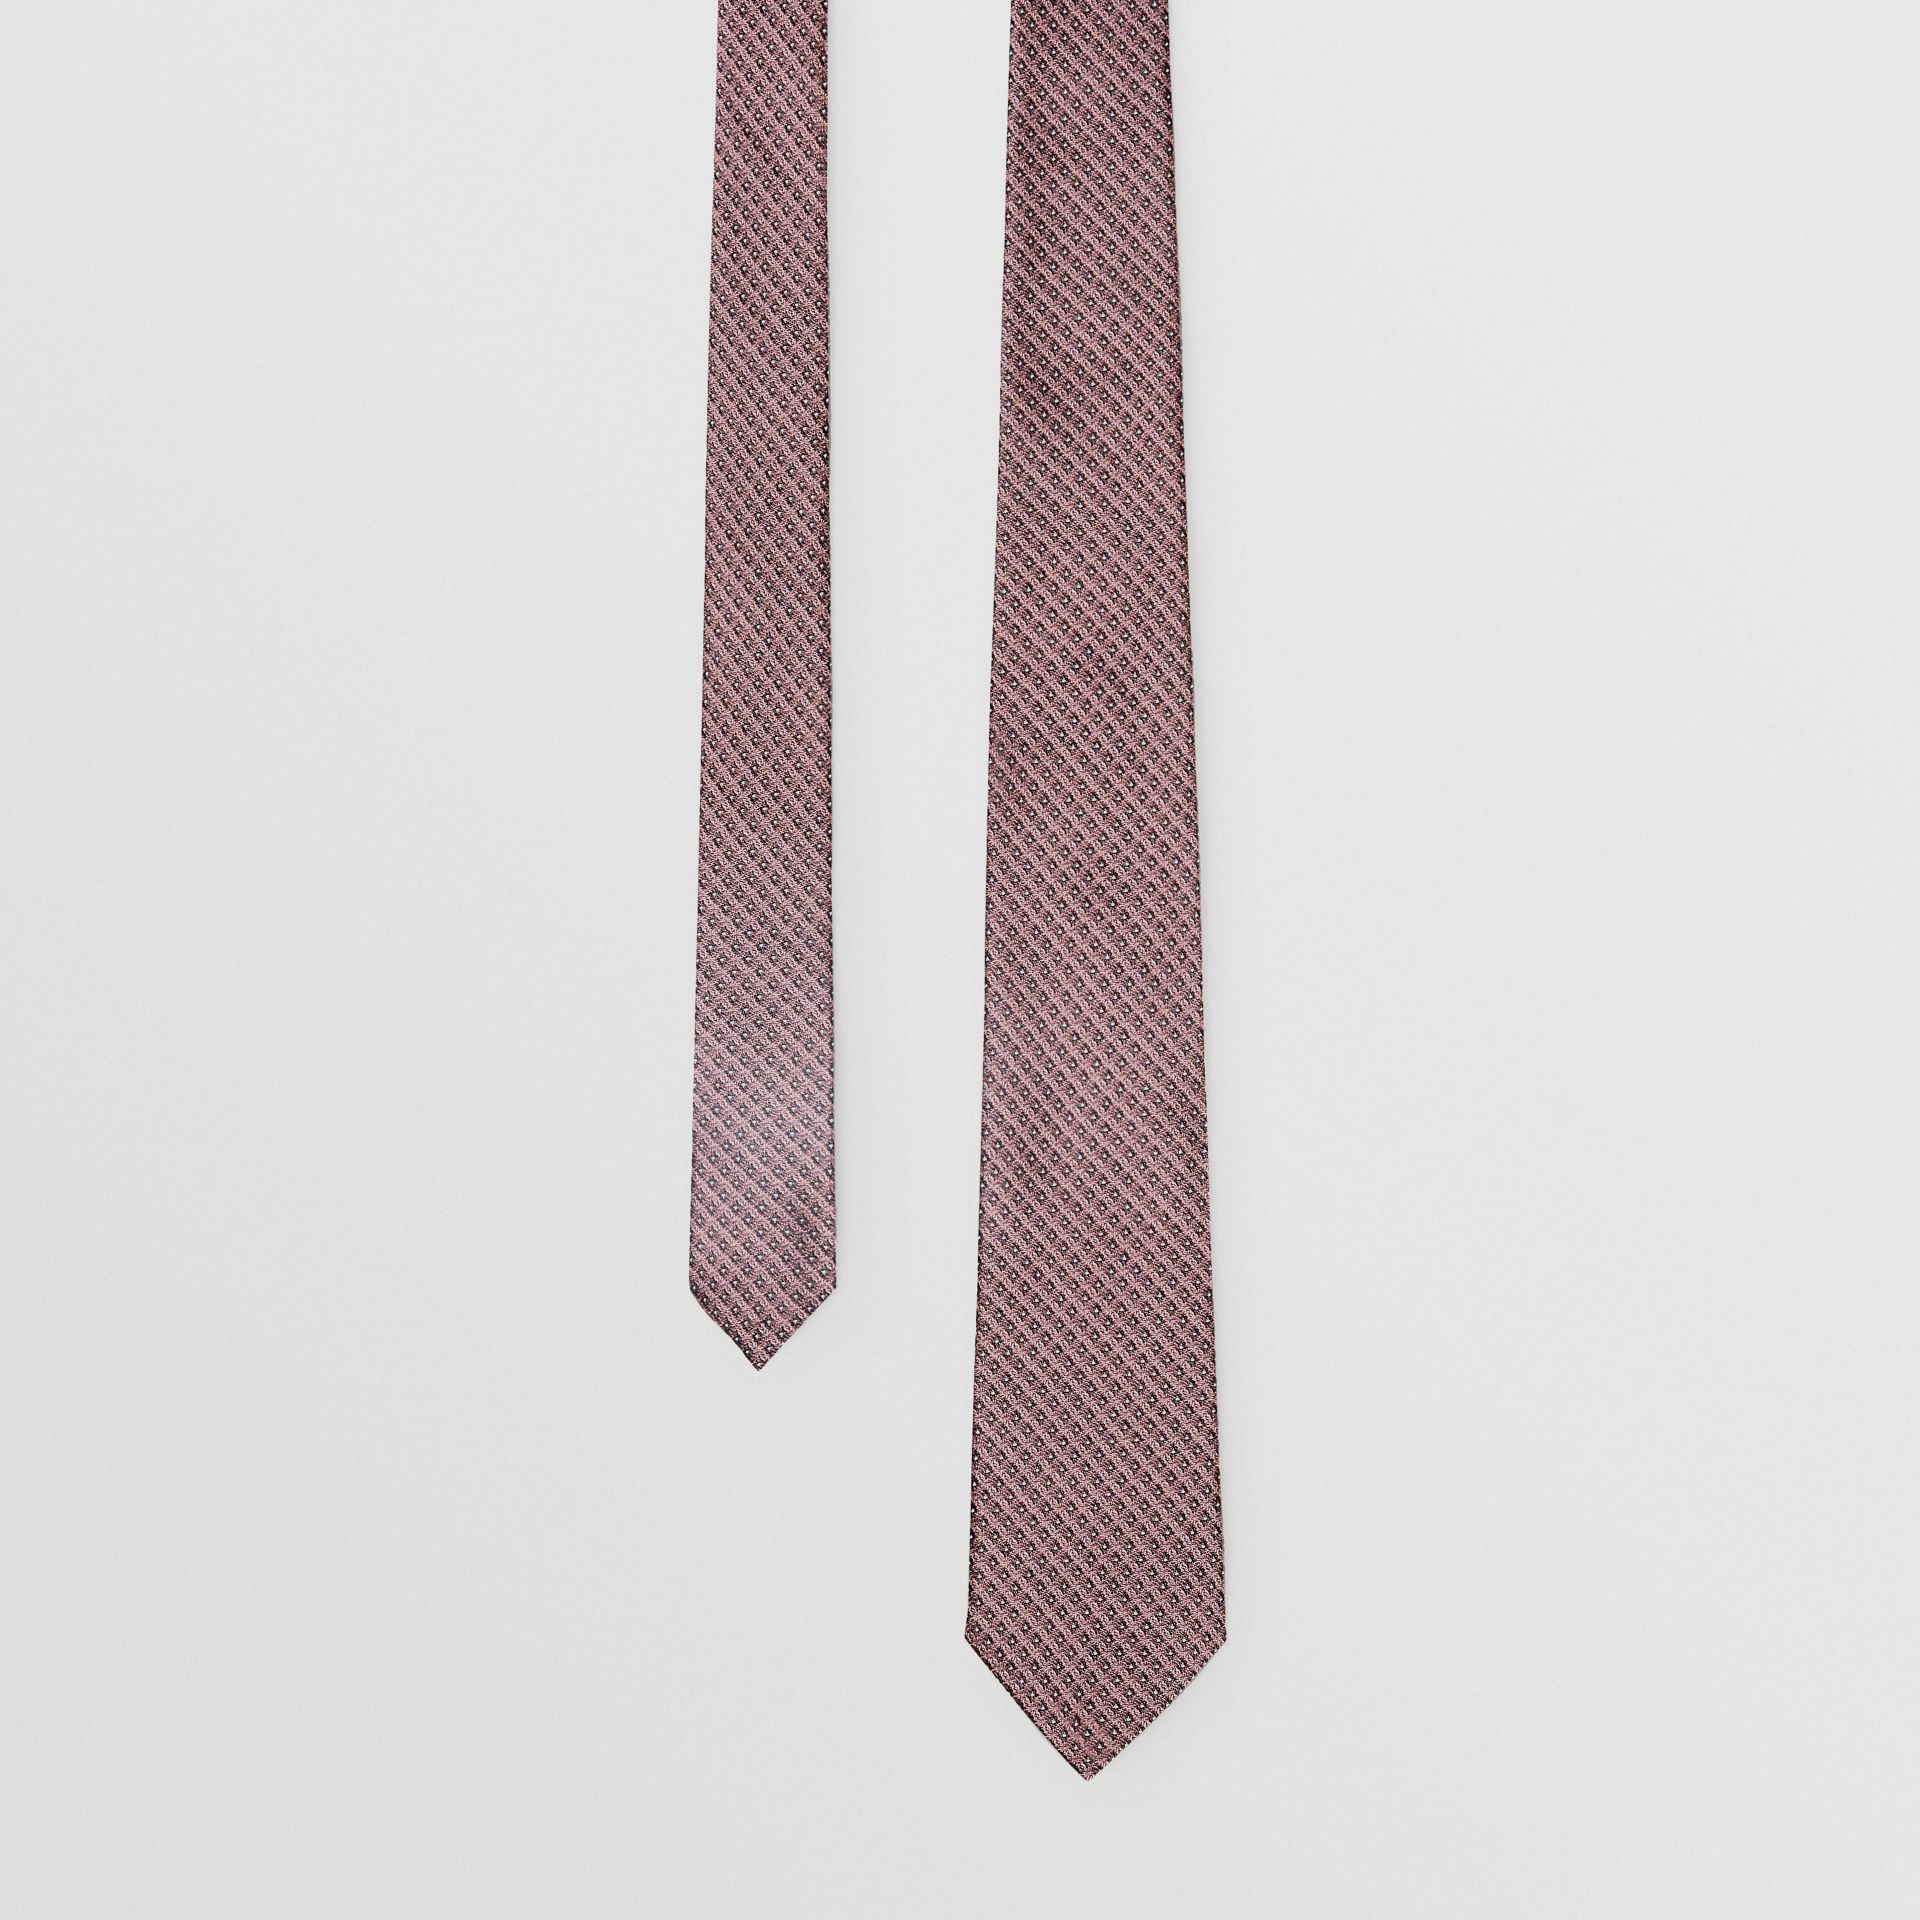 Classic Cut Micro Dot Silk Jacquard Tie in Garnet Pink - Men | Burberry - gallery image 0